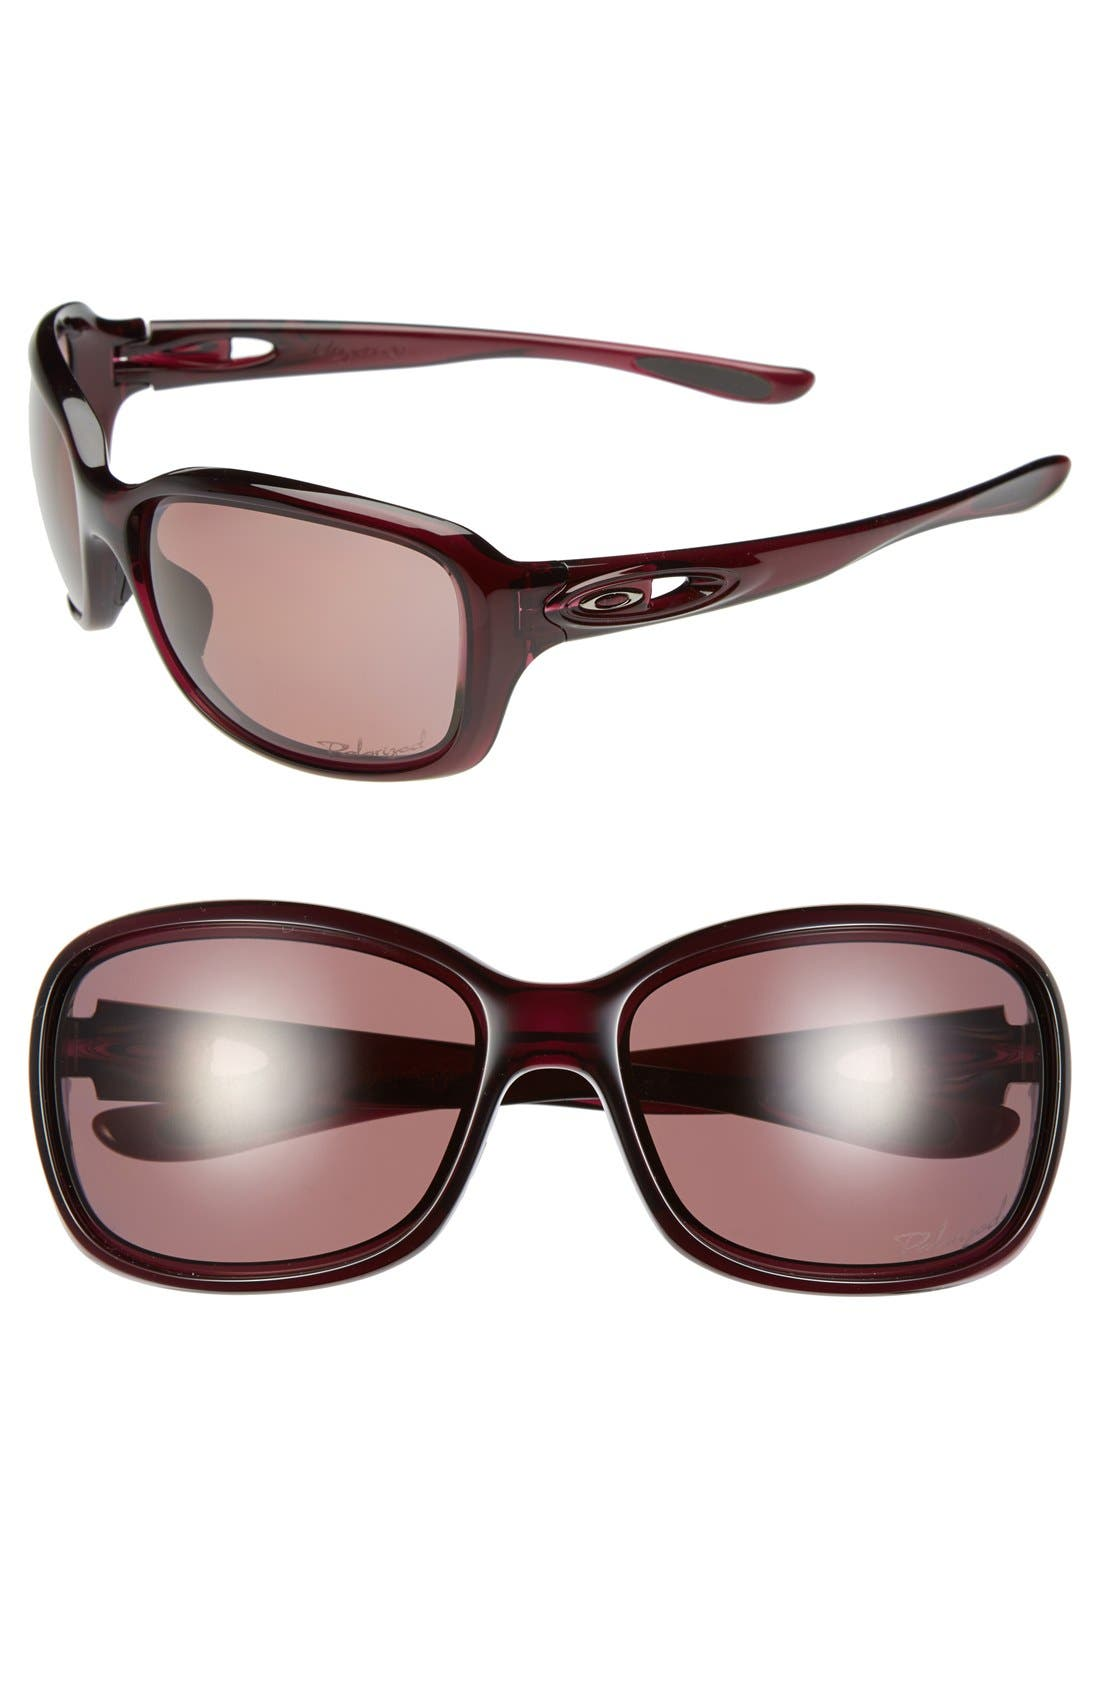 Main Image - Oakley 'Urgency' 61mm Polarized Sunglasses